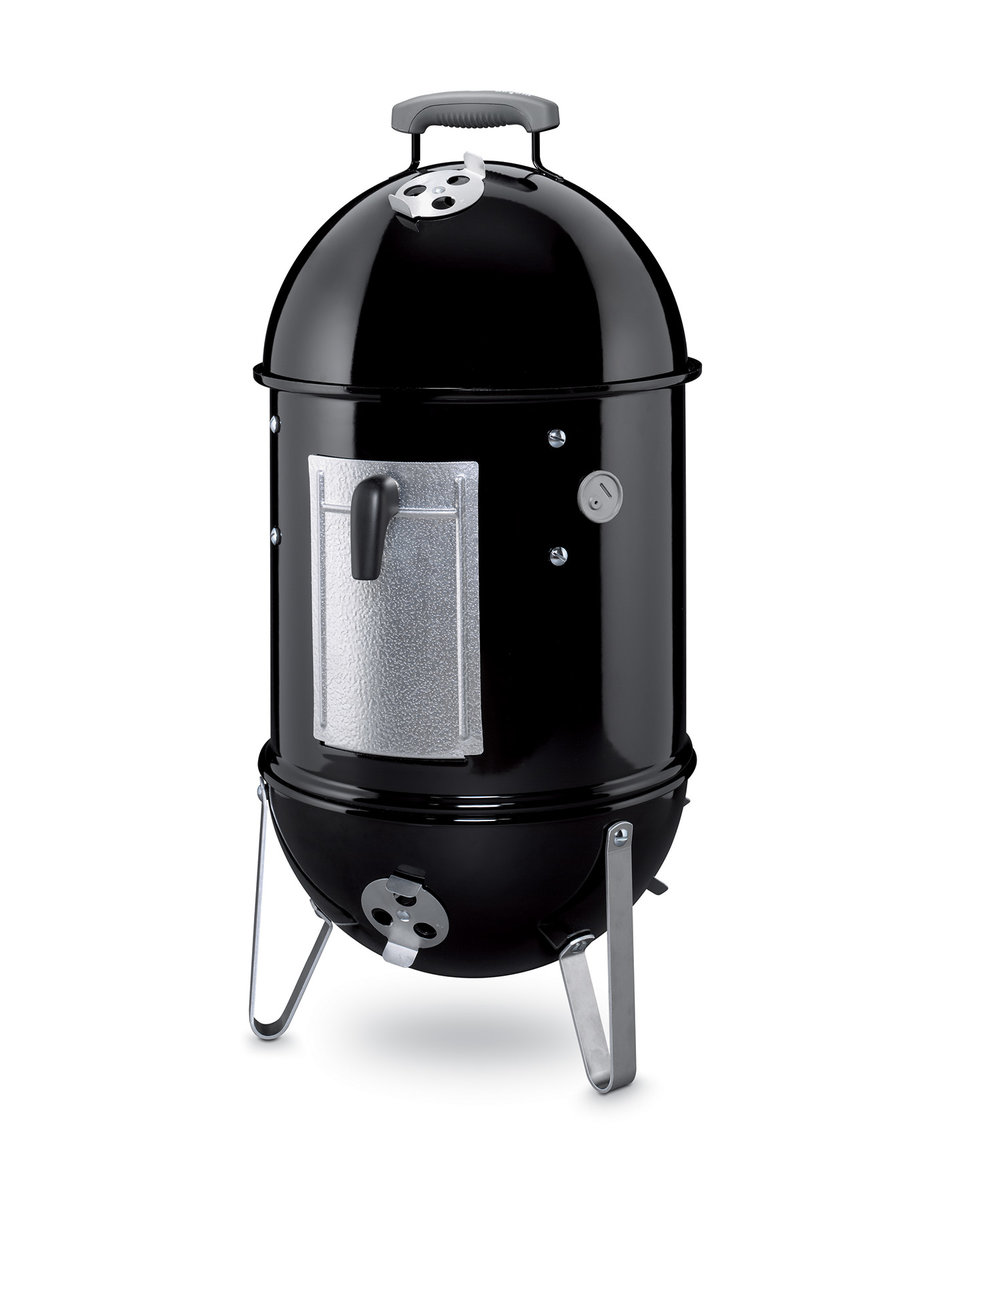 WEBER 37cm SMOKEY MOUNTAIN COOKER $399   If you want to get serious about smoking, you'll love Weber's Smokey Mountain Cooker. Inside, a porcelain enamelled water pan generates steam to keep the cooking temperature low and even. As a result, the foods are tender, succulent and moist. Smouldering smoke combines with the steam and filters up through the double racks, encircling hams, fish, poultry or sausage to produce beautiful flavours. The Smokey Mountain Cooker is perfect for homemade bacon. The smoker is made from heavy gauge steel sealed in porcelain enamel that won't peel, stain or burn. The cookbook includes an easy reference smoker cooking chart and all the information you need to get you started. Also included with the Smokey Mountain Cooker is a premium quality vinyl cover.